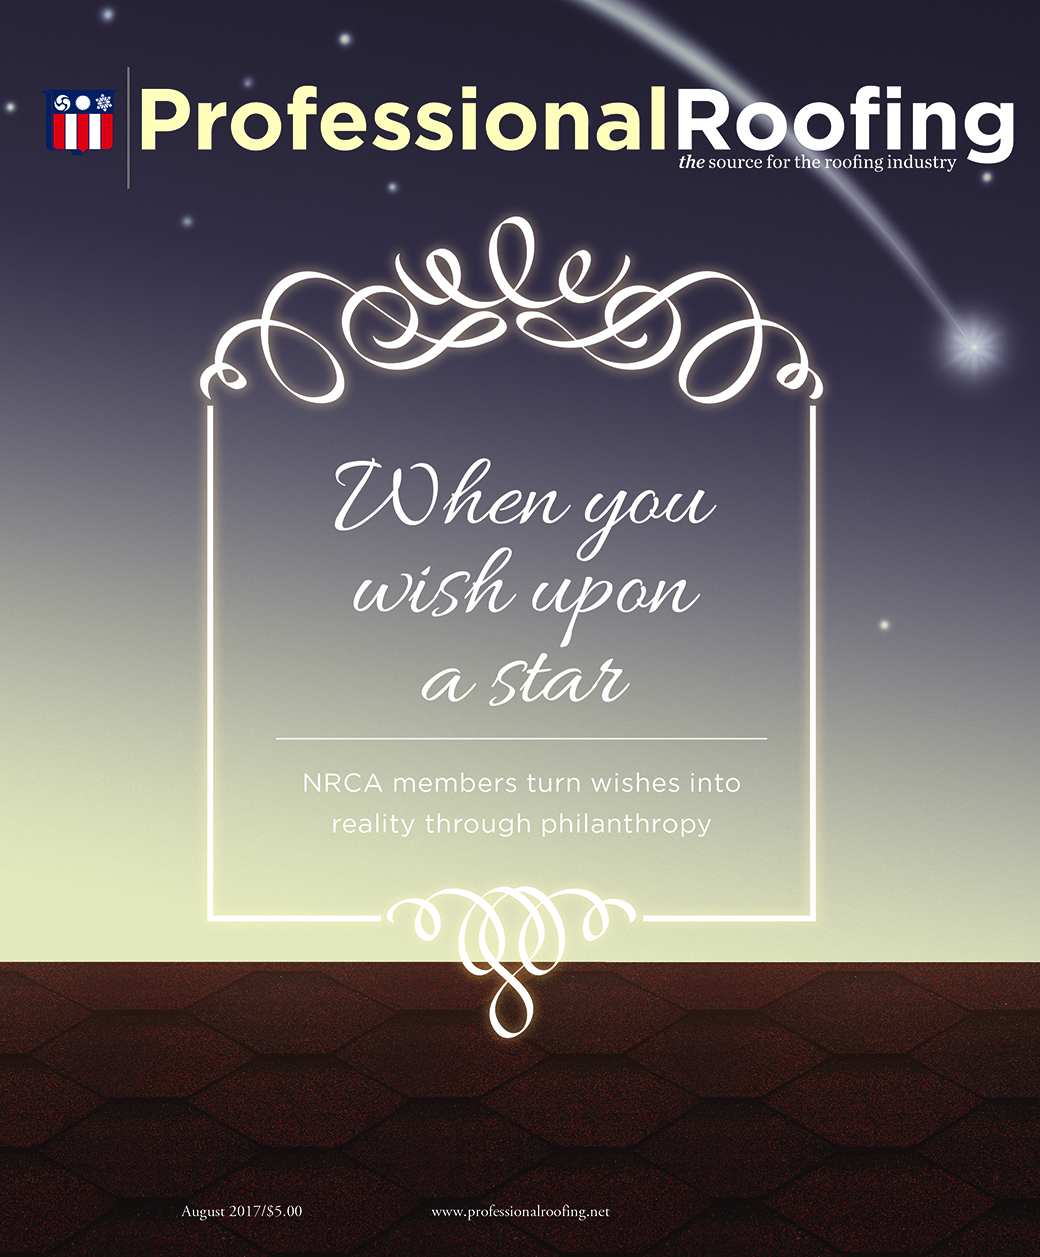 Professional Roofing Magazine 8/1/2017